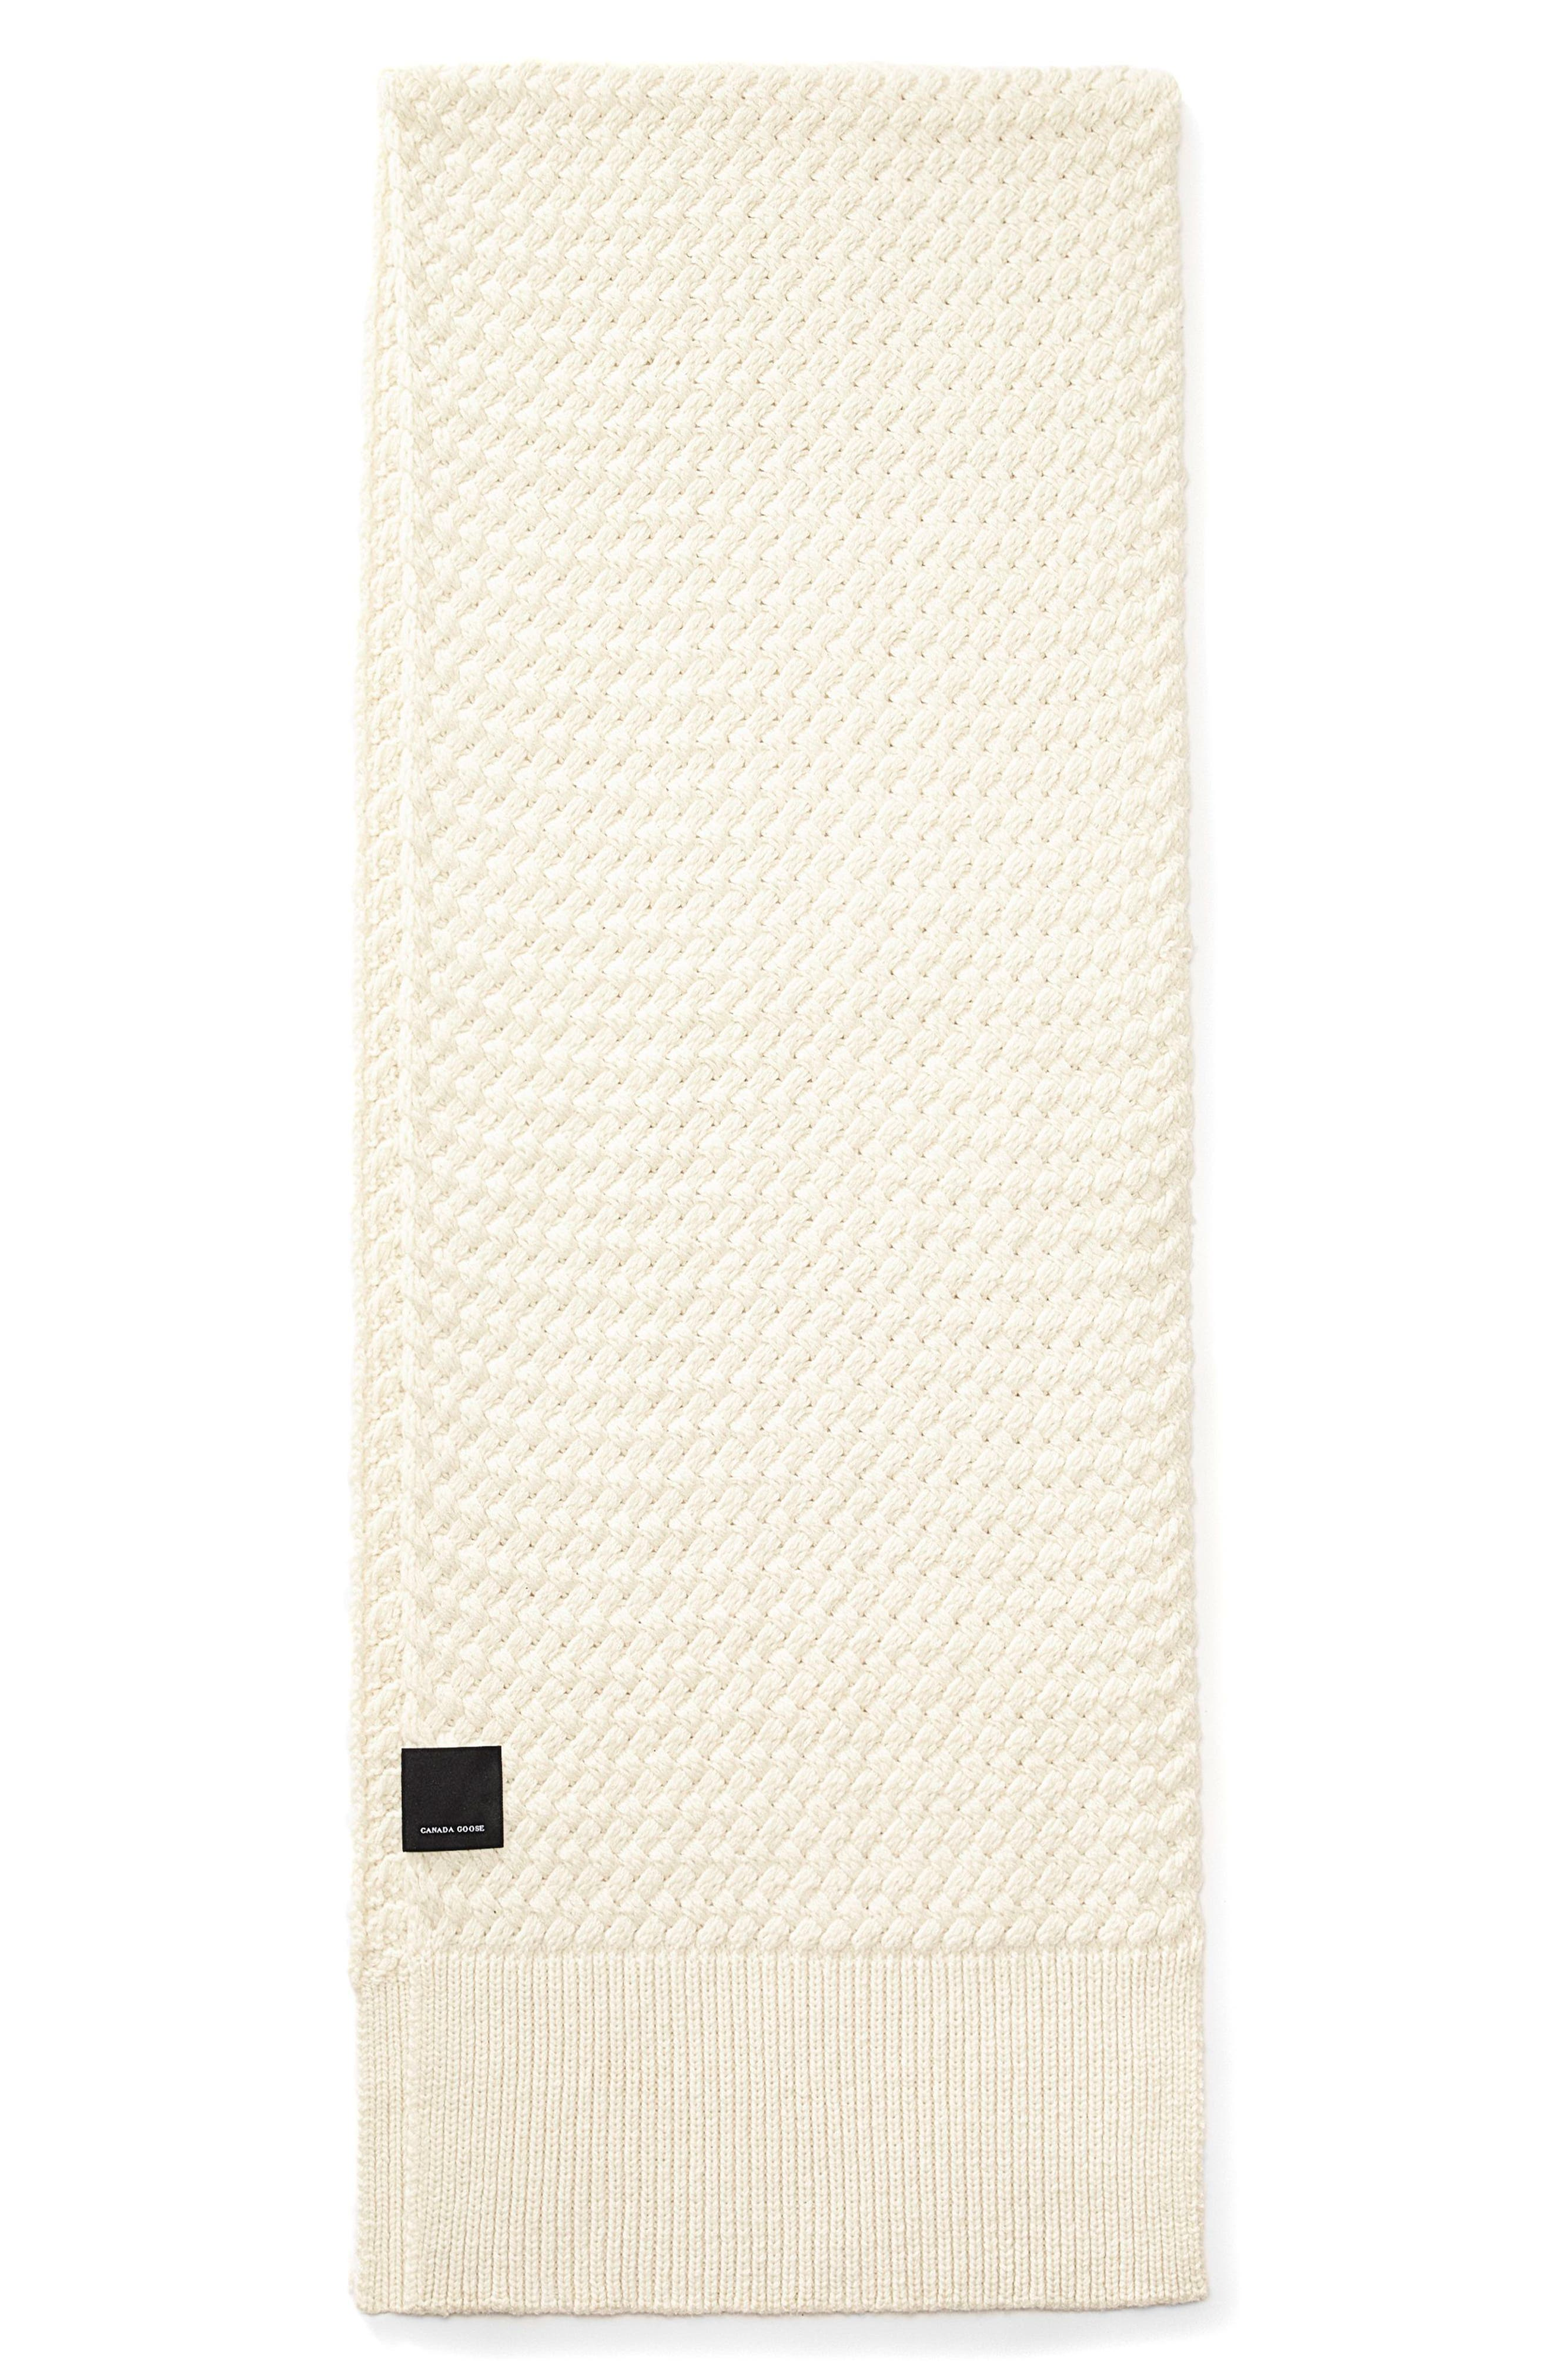 Basket Weave Merino Wool Scarf,                             Main thumbnail 1, color,                             Ivory